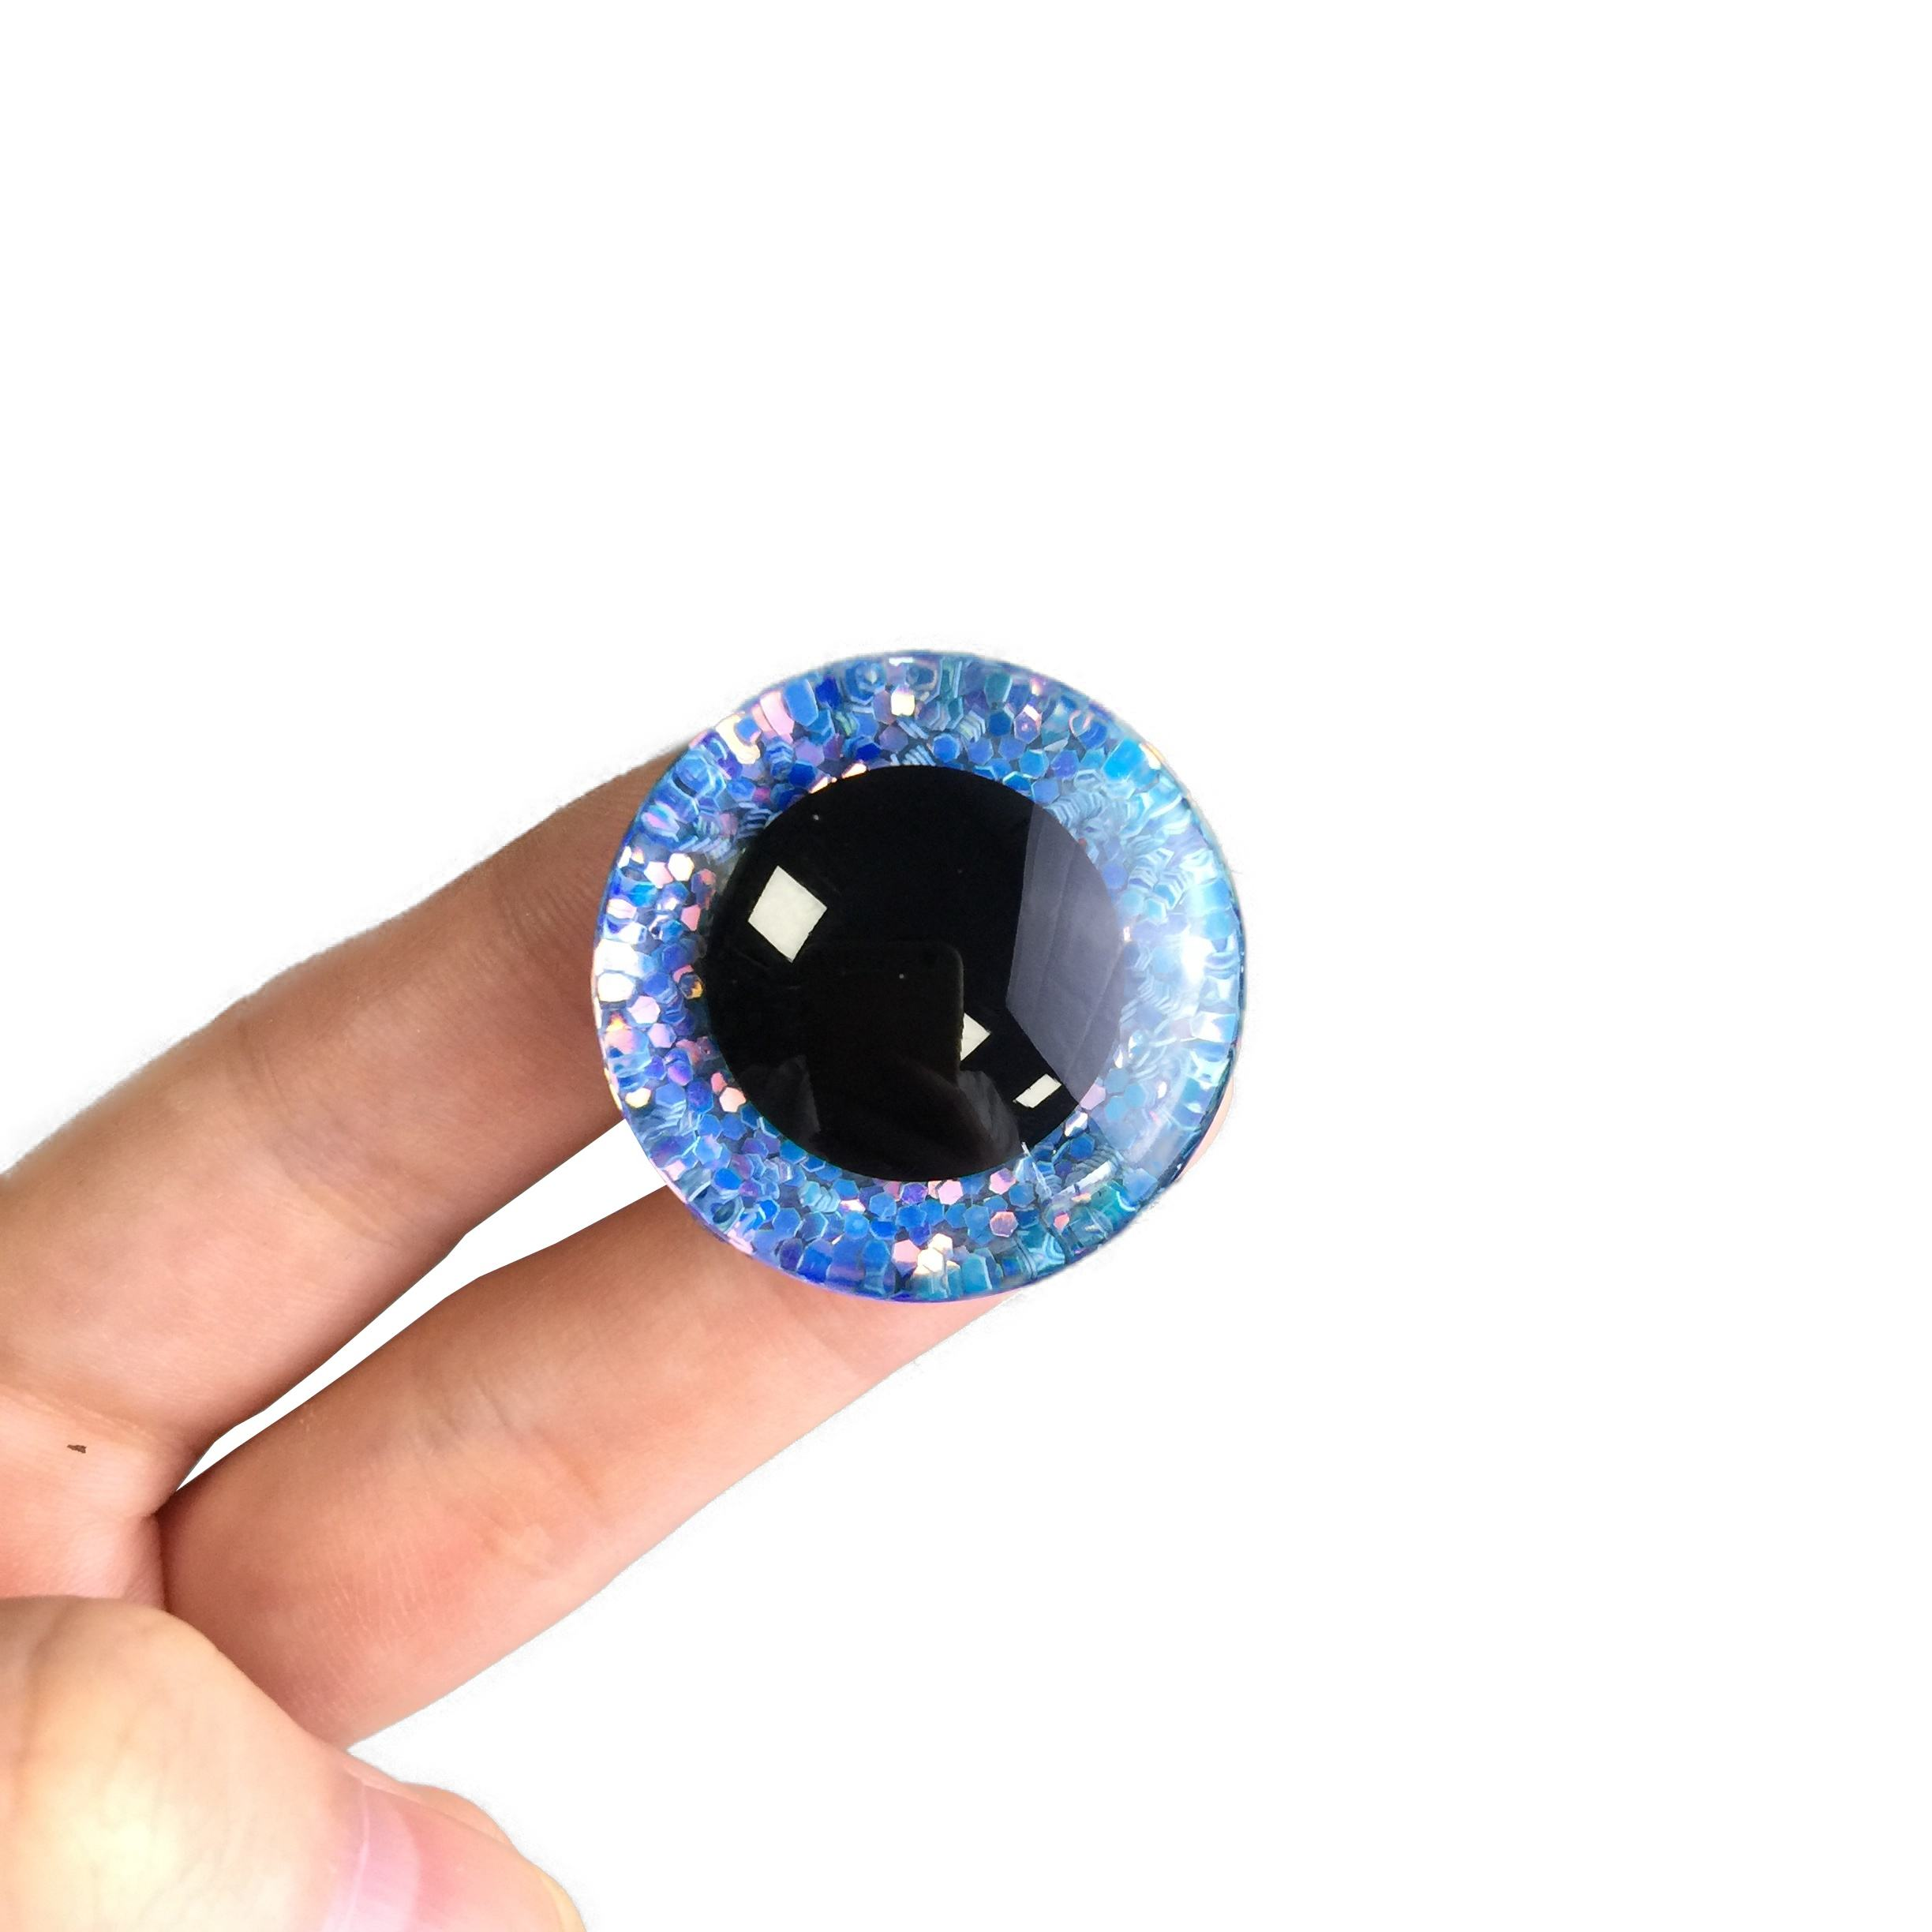 Plastic Safety Eyes Glitter Round Eyes for Doll Teddy Bear Puppet Toy Plush Animal and DIY Craft Making